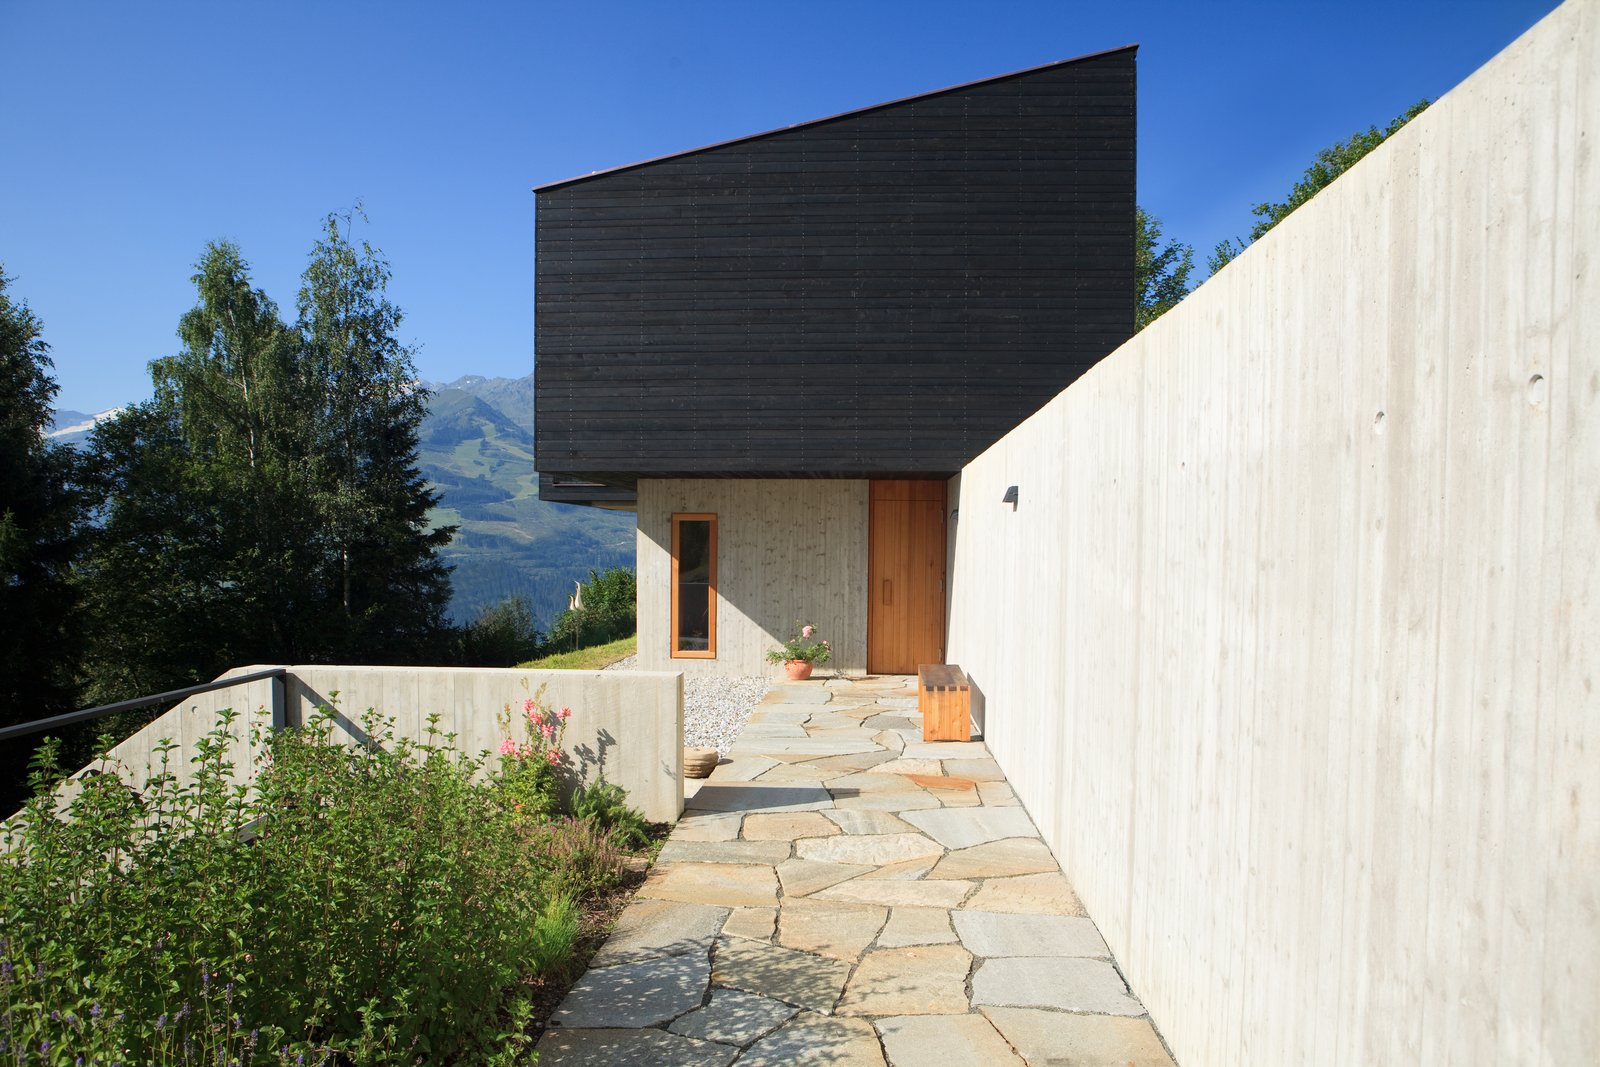 Exterior and House Building Type  Photos from A New Book Reveals Some of the World's Most Incredible Vacation Rentals